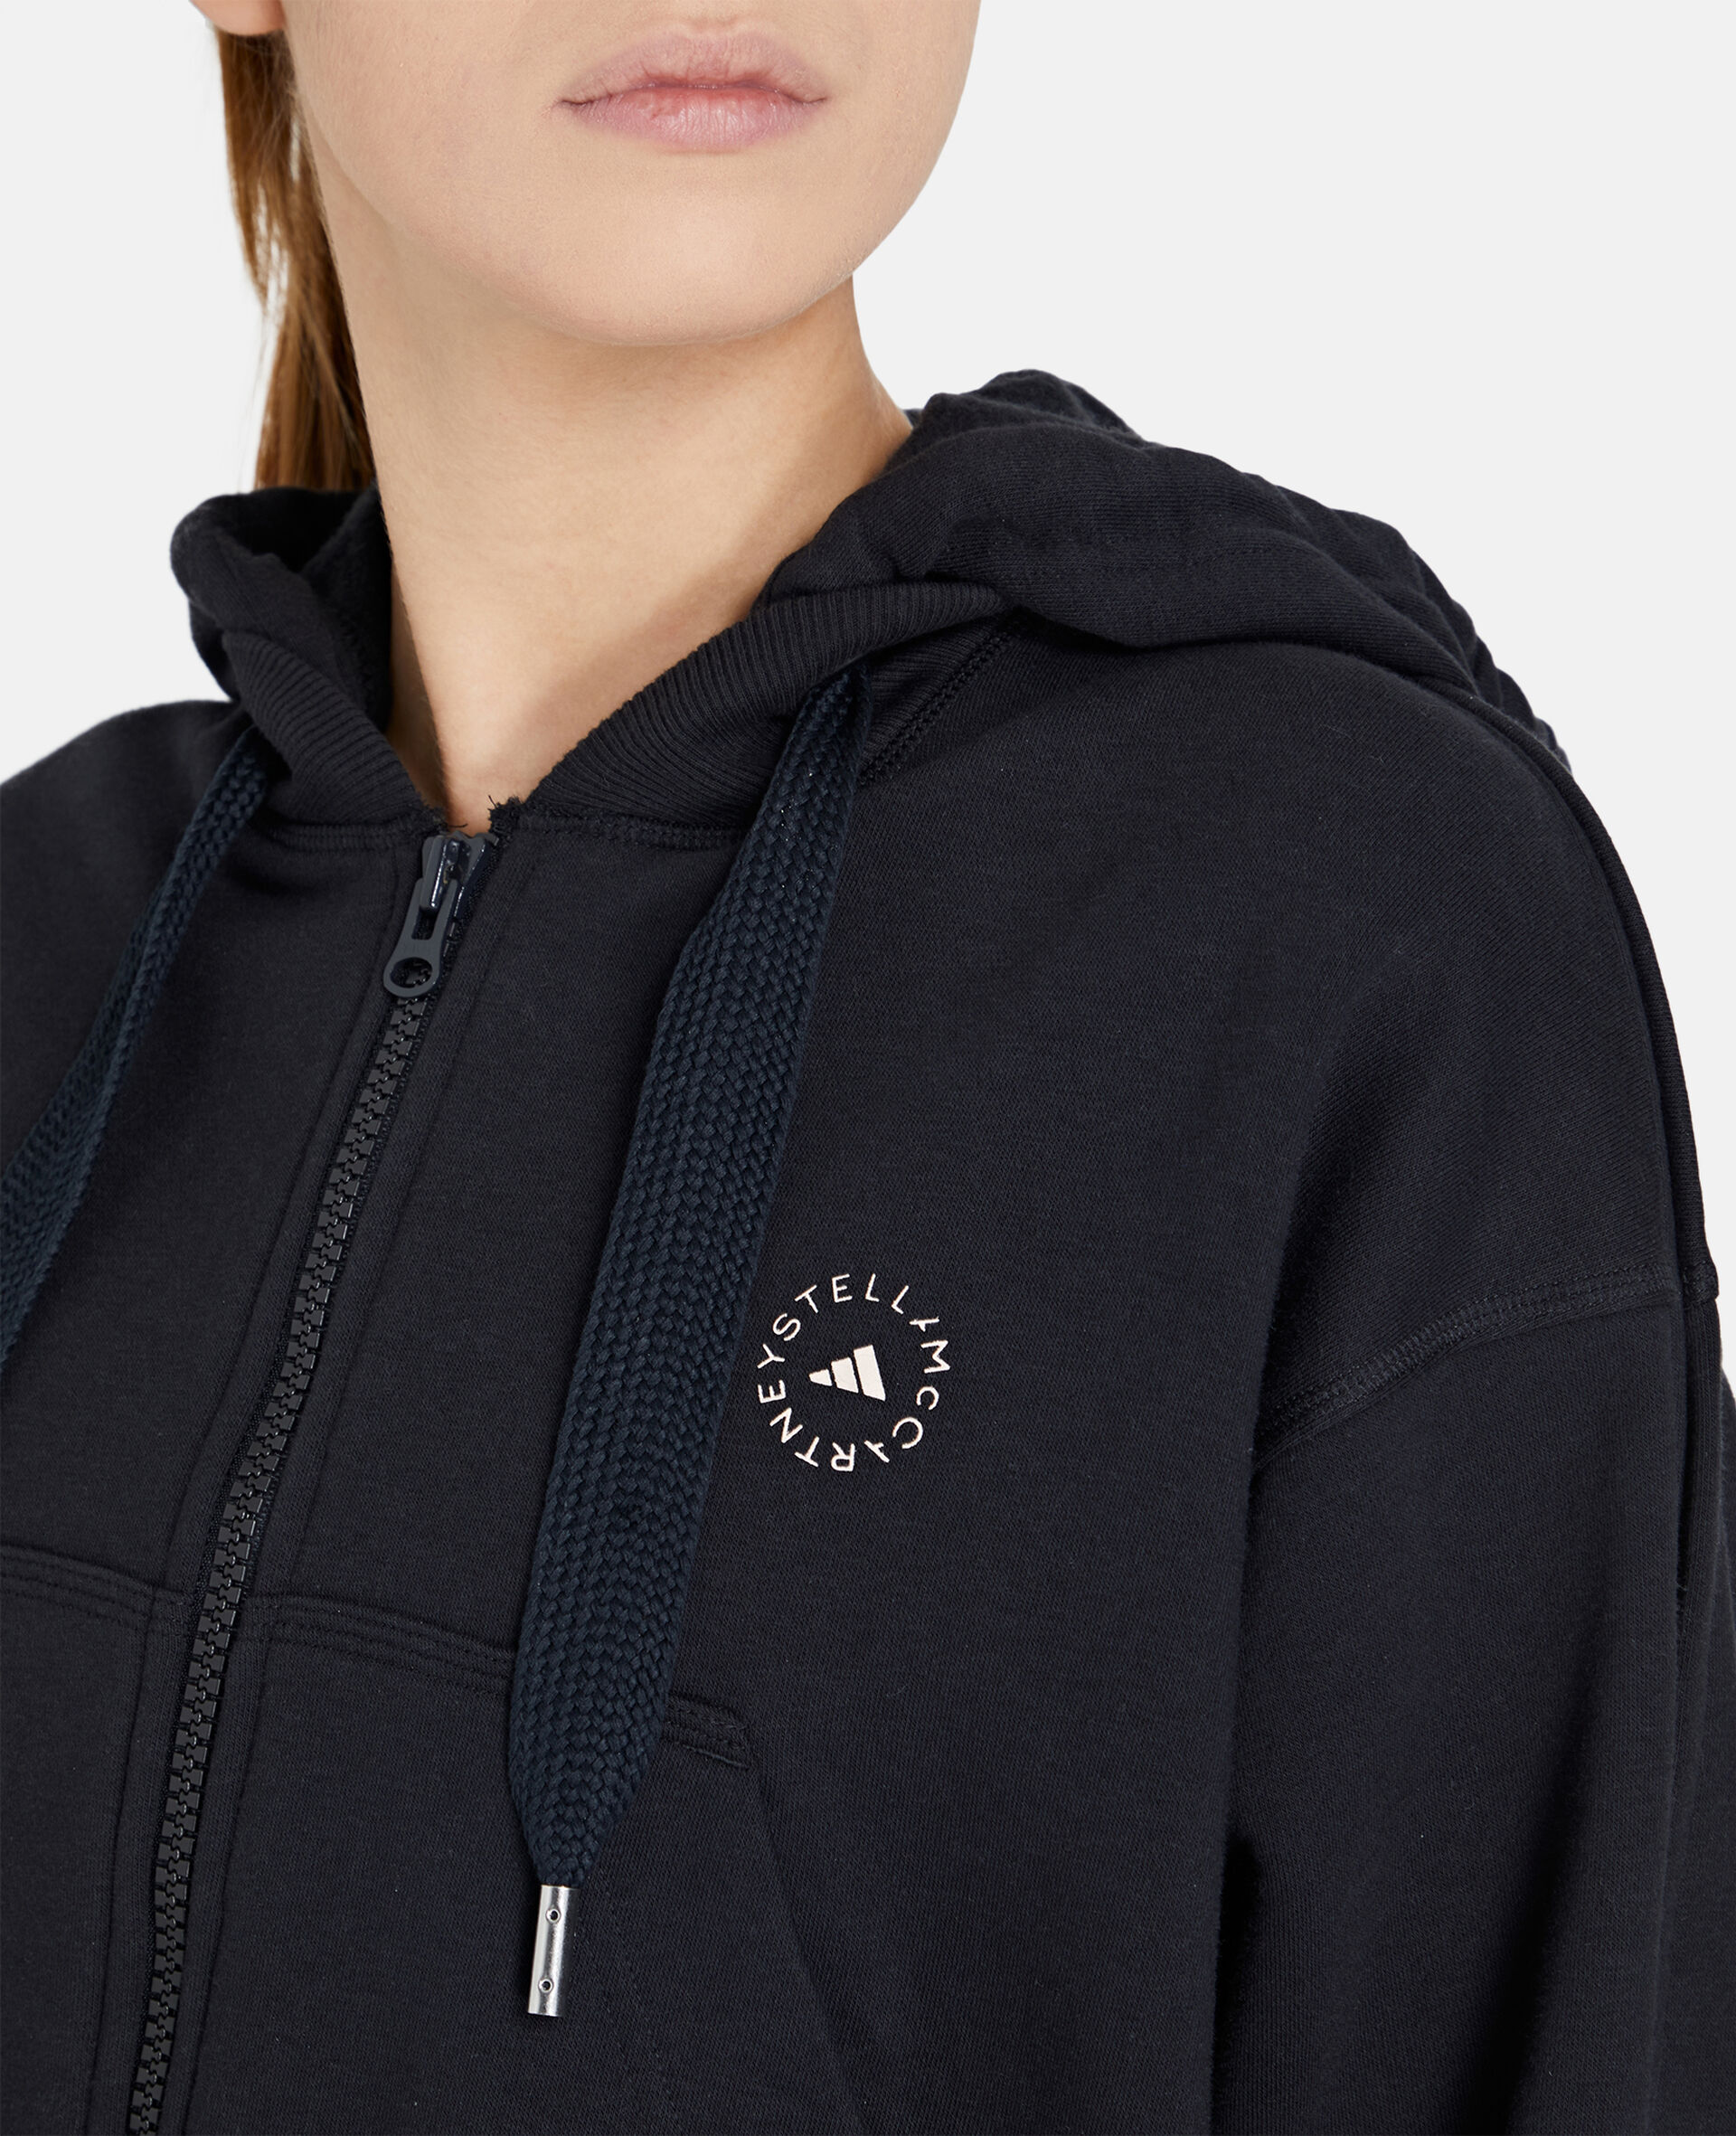 Black Full-zipper Cropped Hoodie-Black-large image number 3